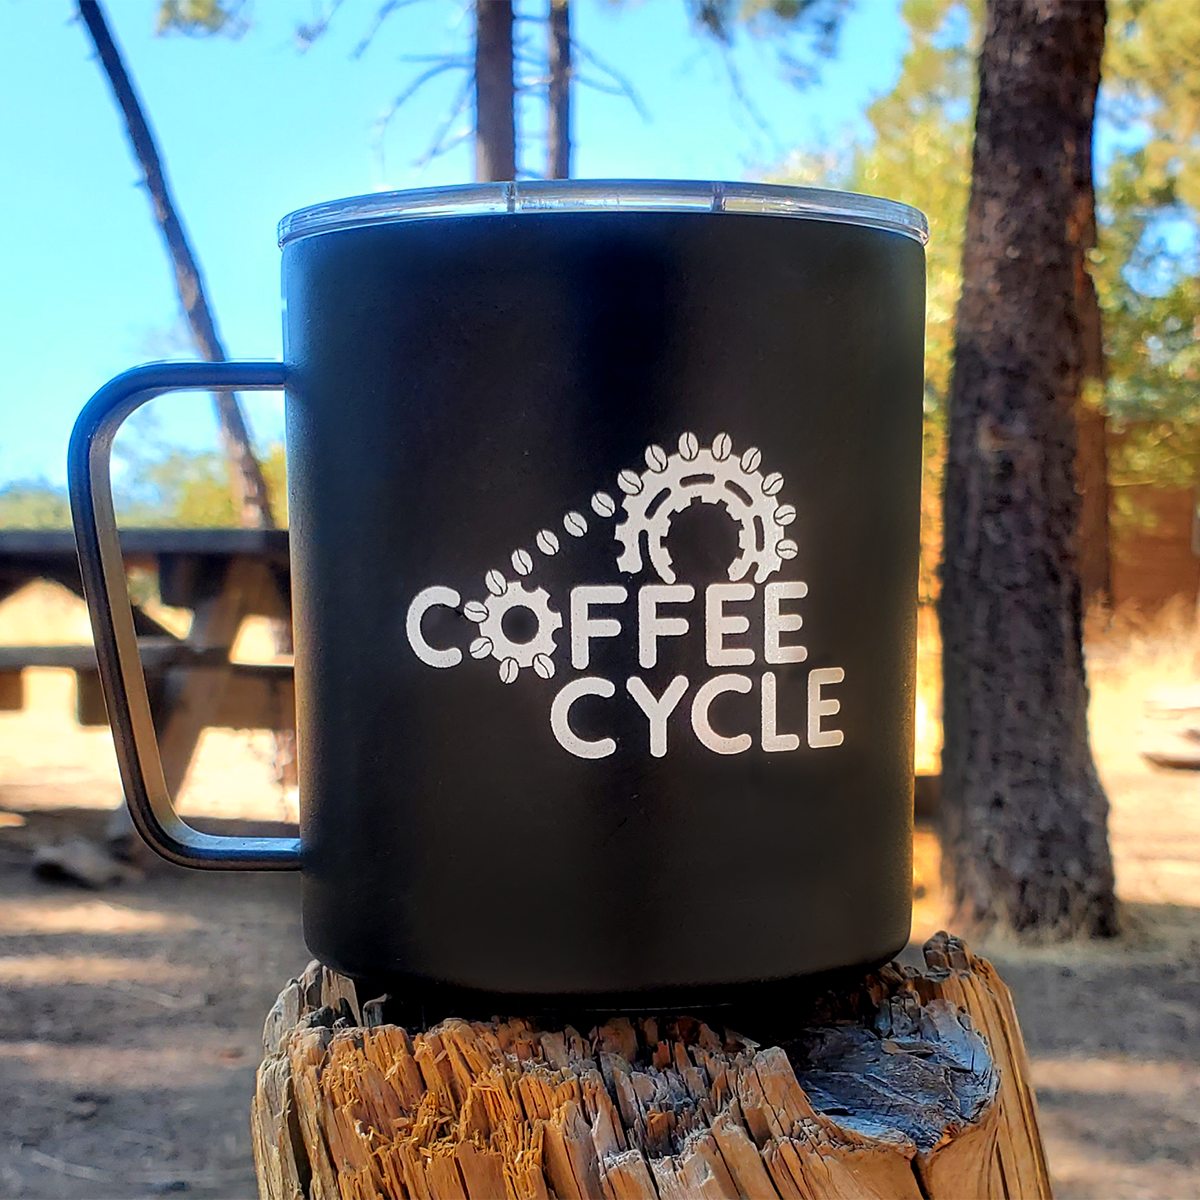 A black stainless steel camp mug with the coffee cycle logo in white.